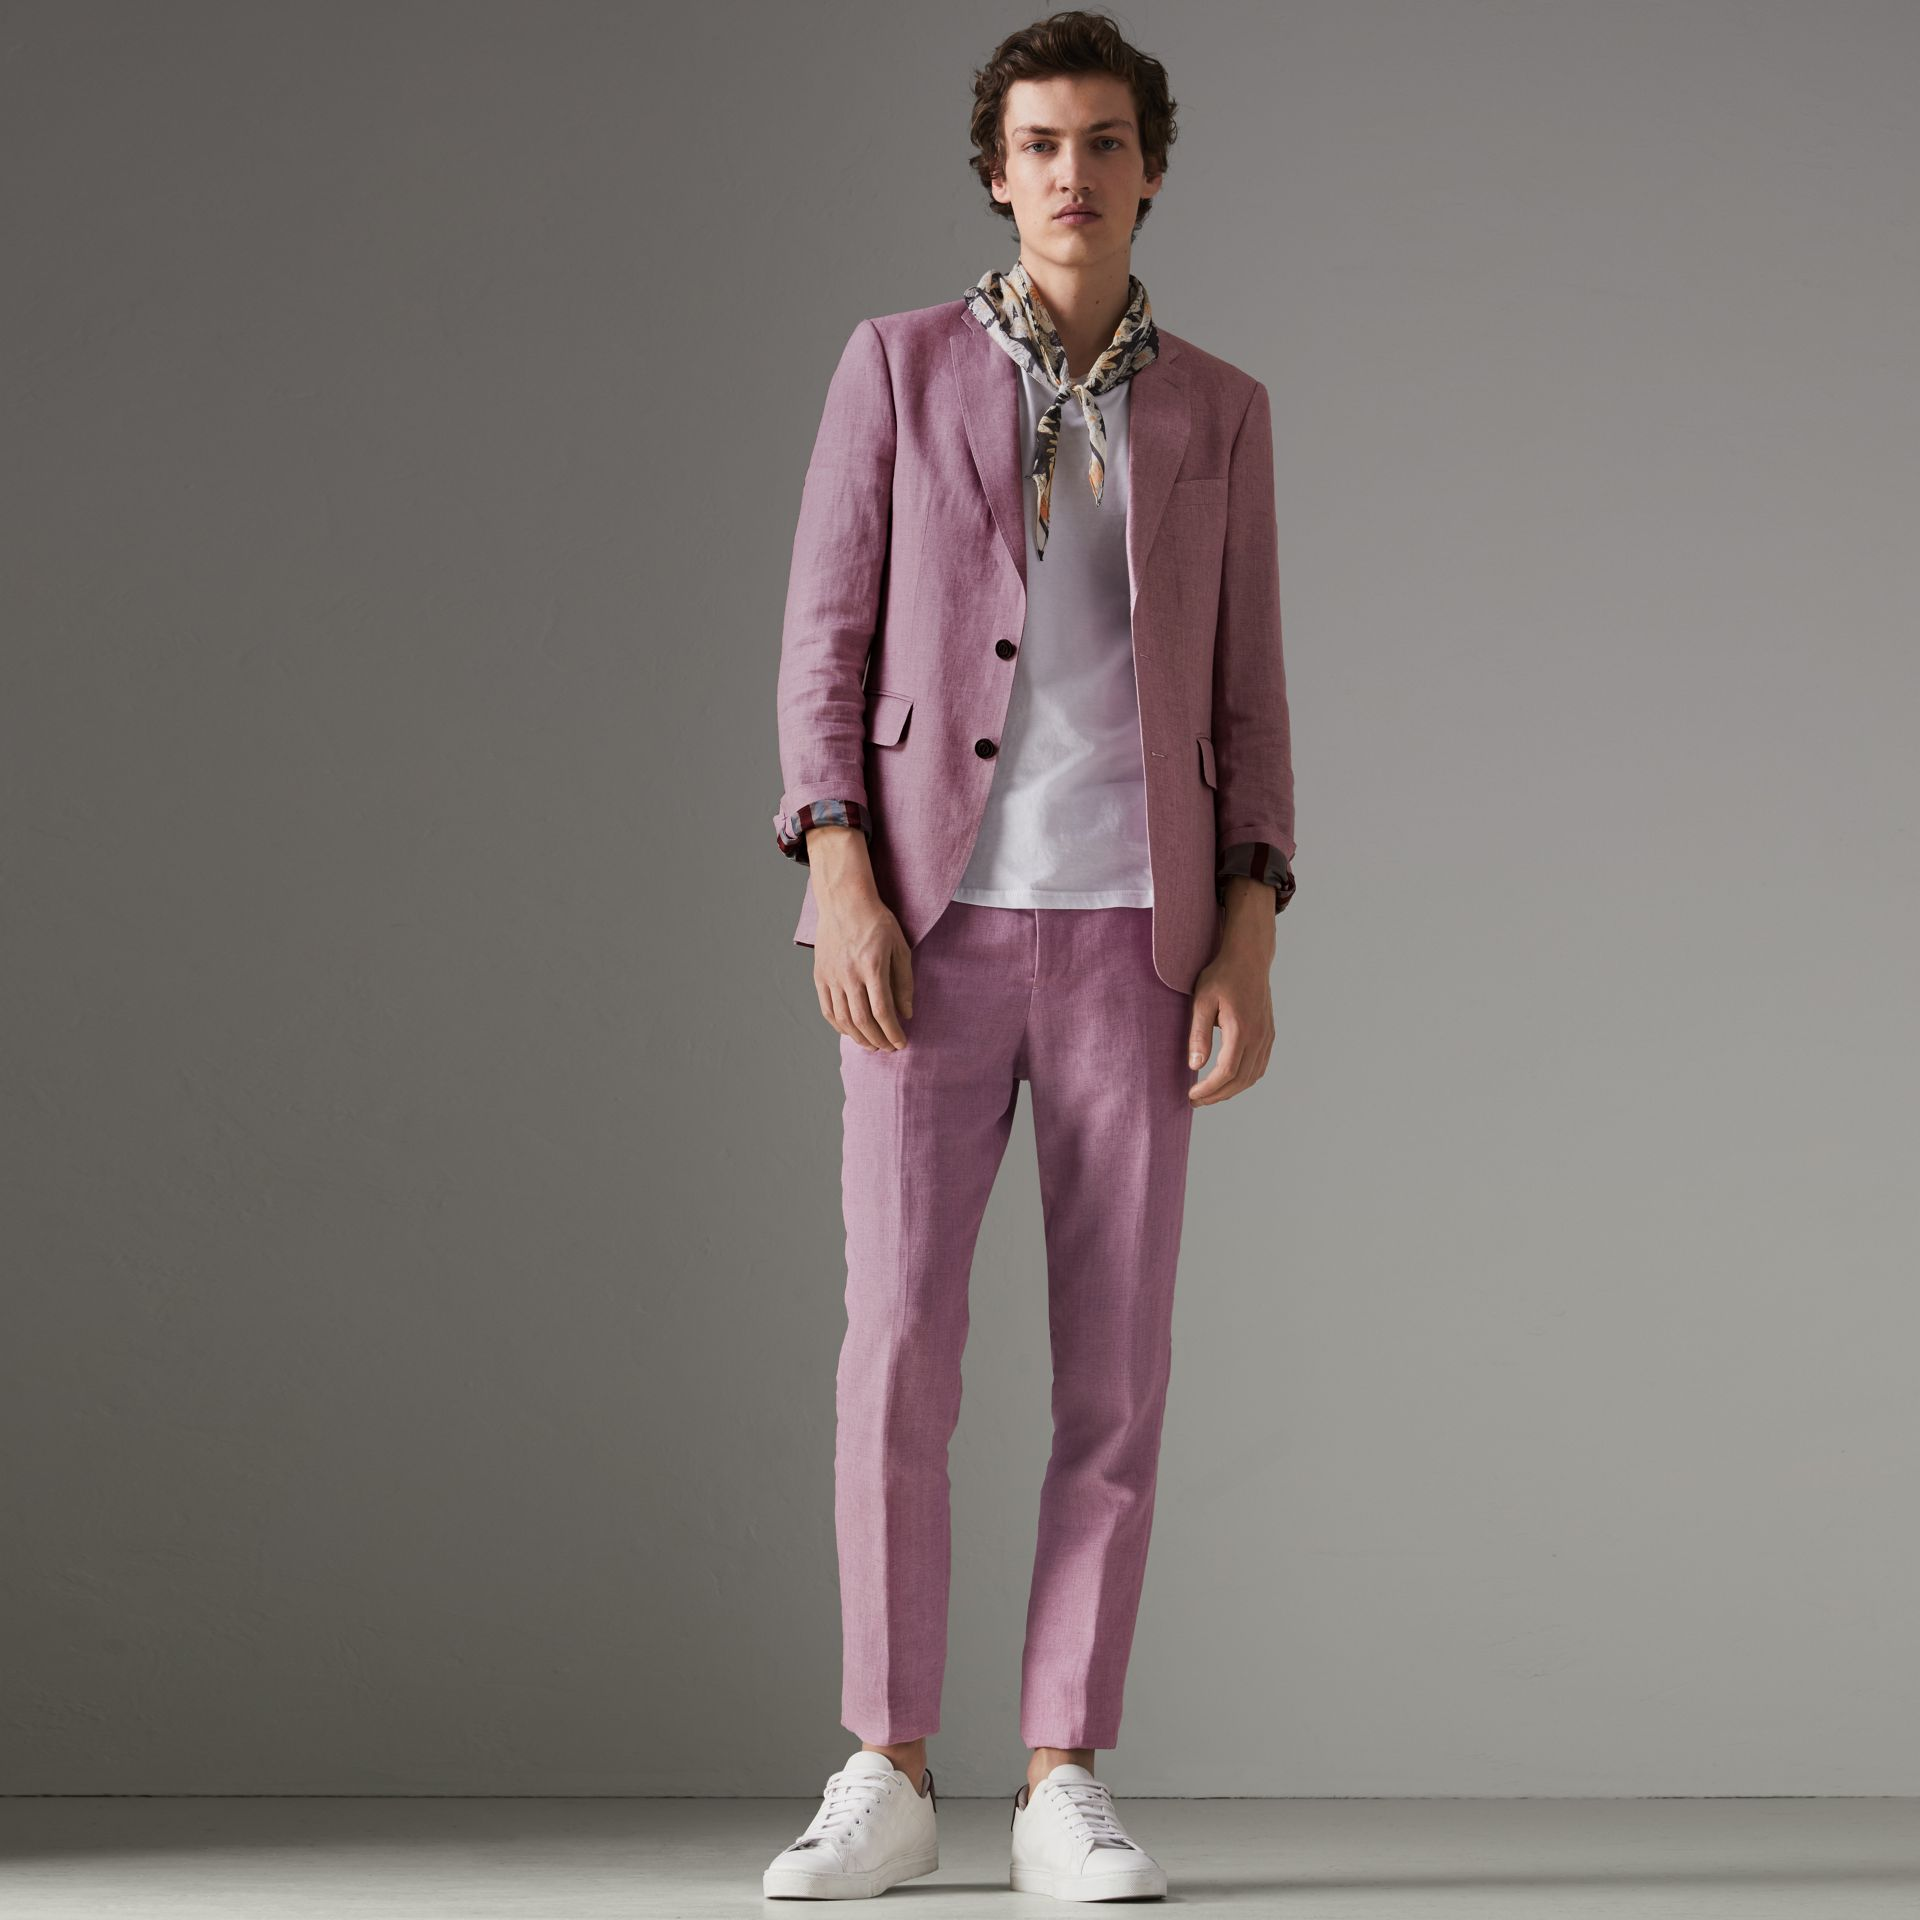 Pantalon de coupe Soho en lin (Pourpre Rose) - Homme | Burberry - photo de la galerie 0